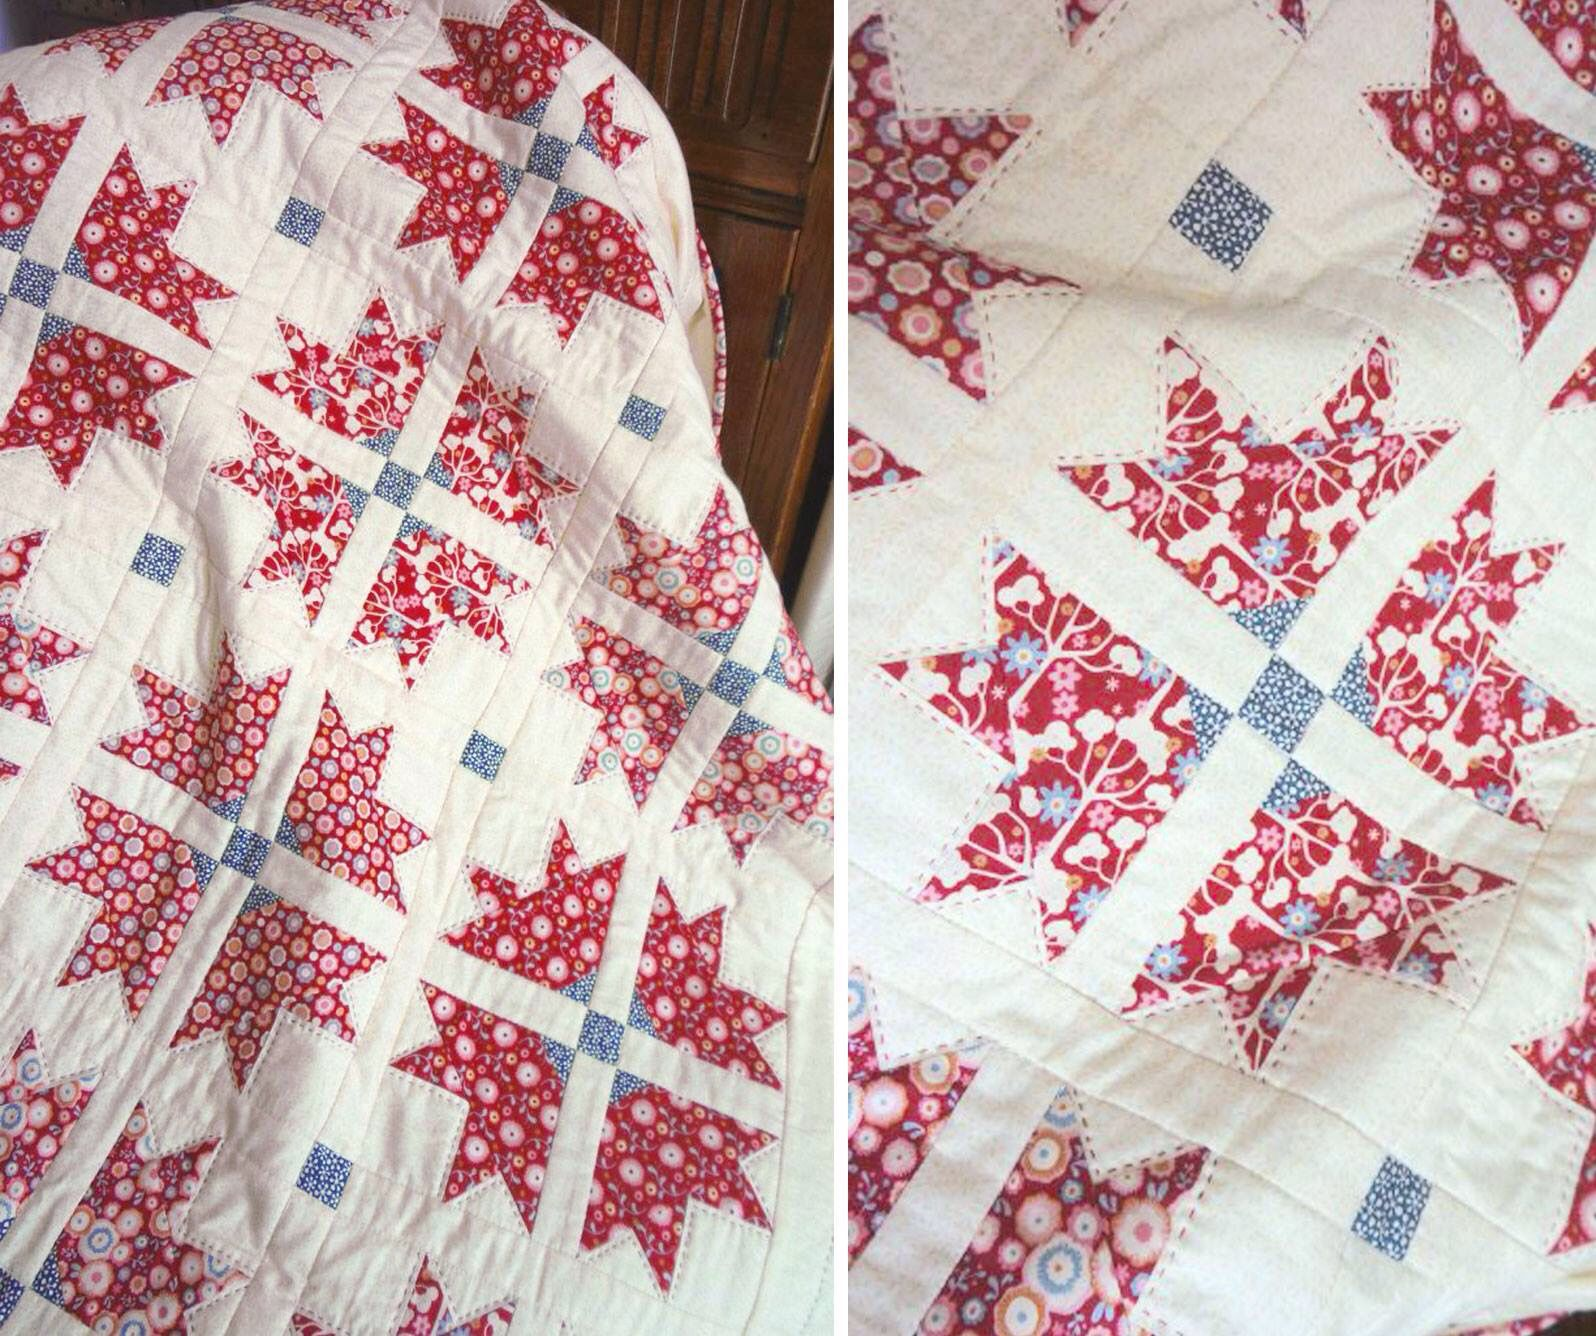 http://www.mccallsquilting.com/mccallsquilting/articles/Cross-and-Crown-FREE-Fresh-Classic-Baby-Quilt-Pattern